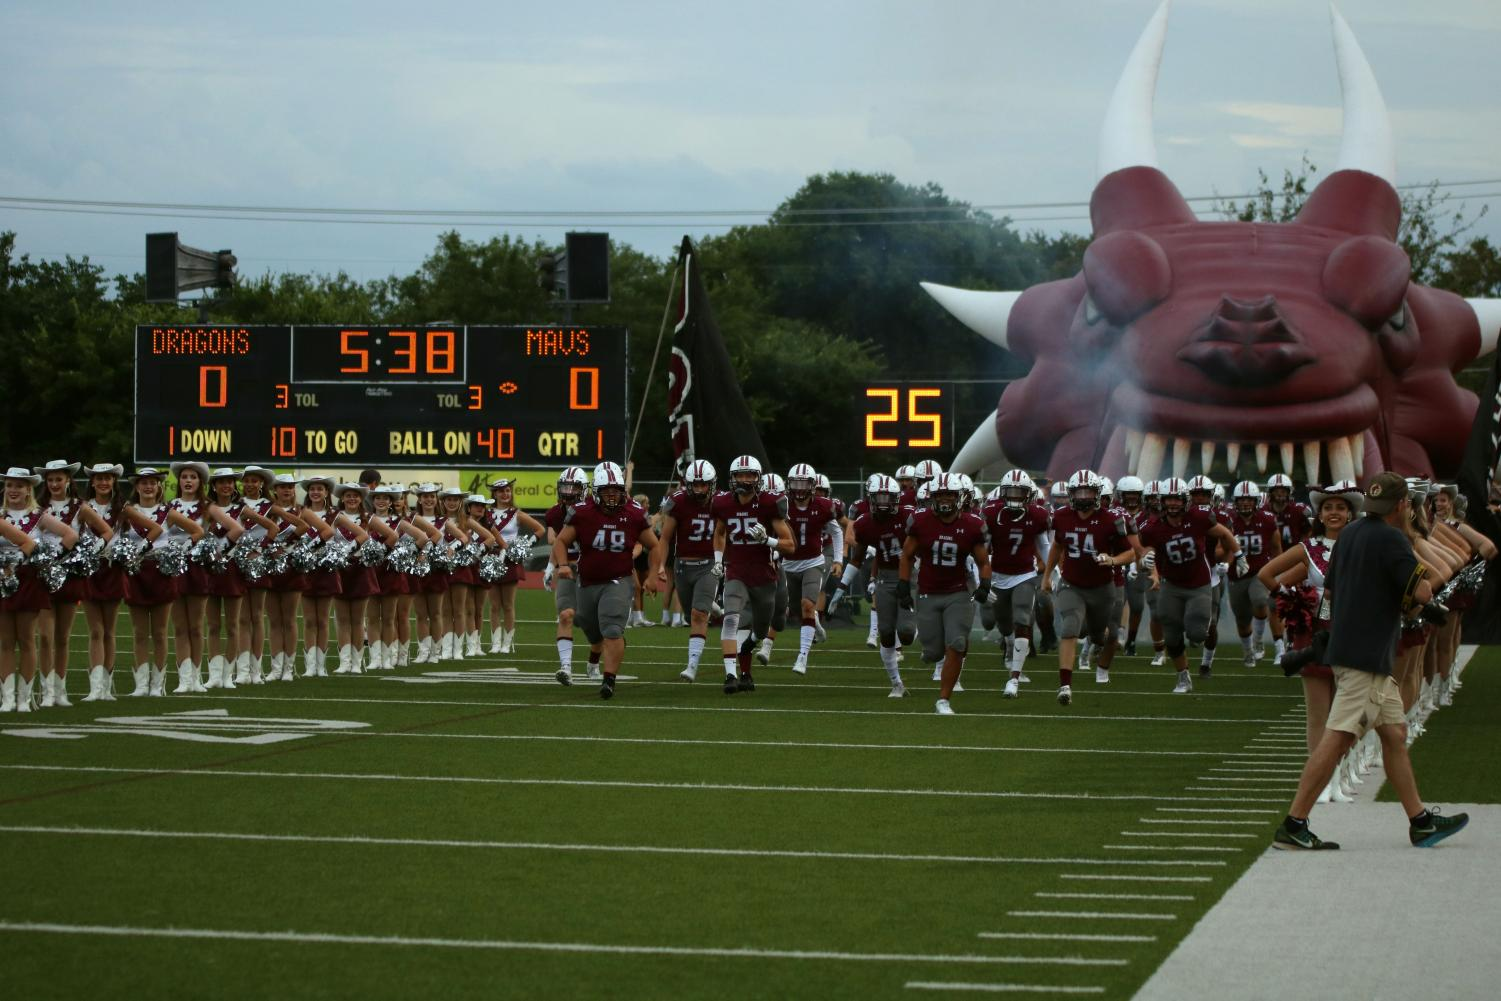 The Dragons run onto the field prior to their home and district opener.